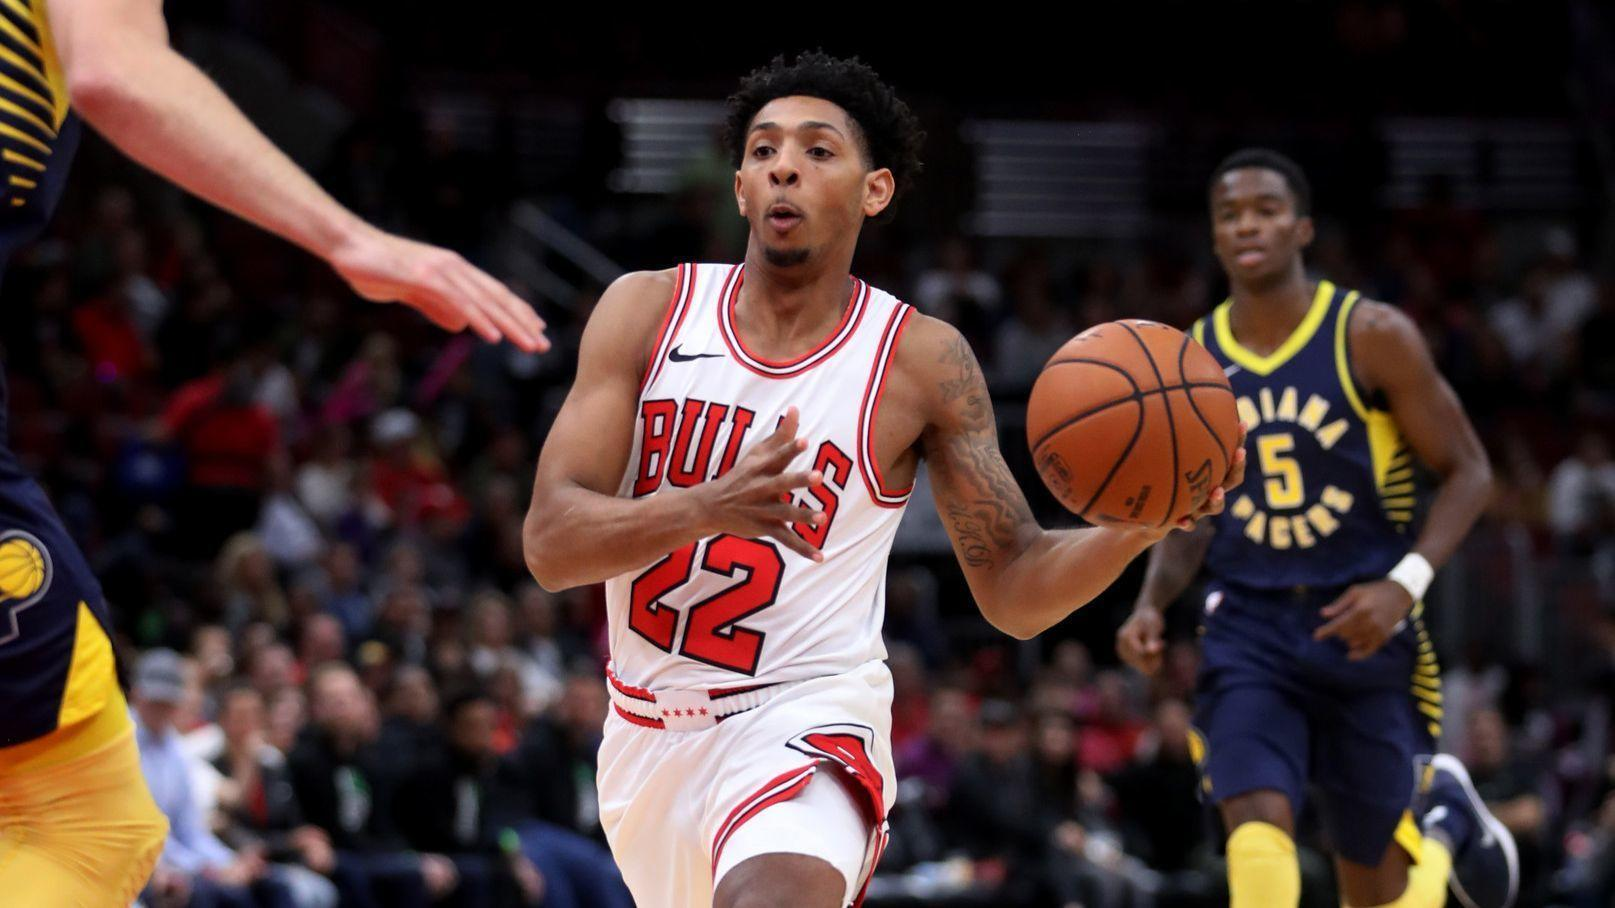 f0b987f2645 Bulls point guard Cameron Payne looks to stay aggressive as he returns to  the bench - Chicago Tribune